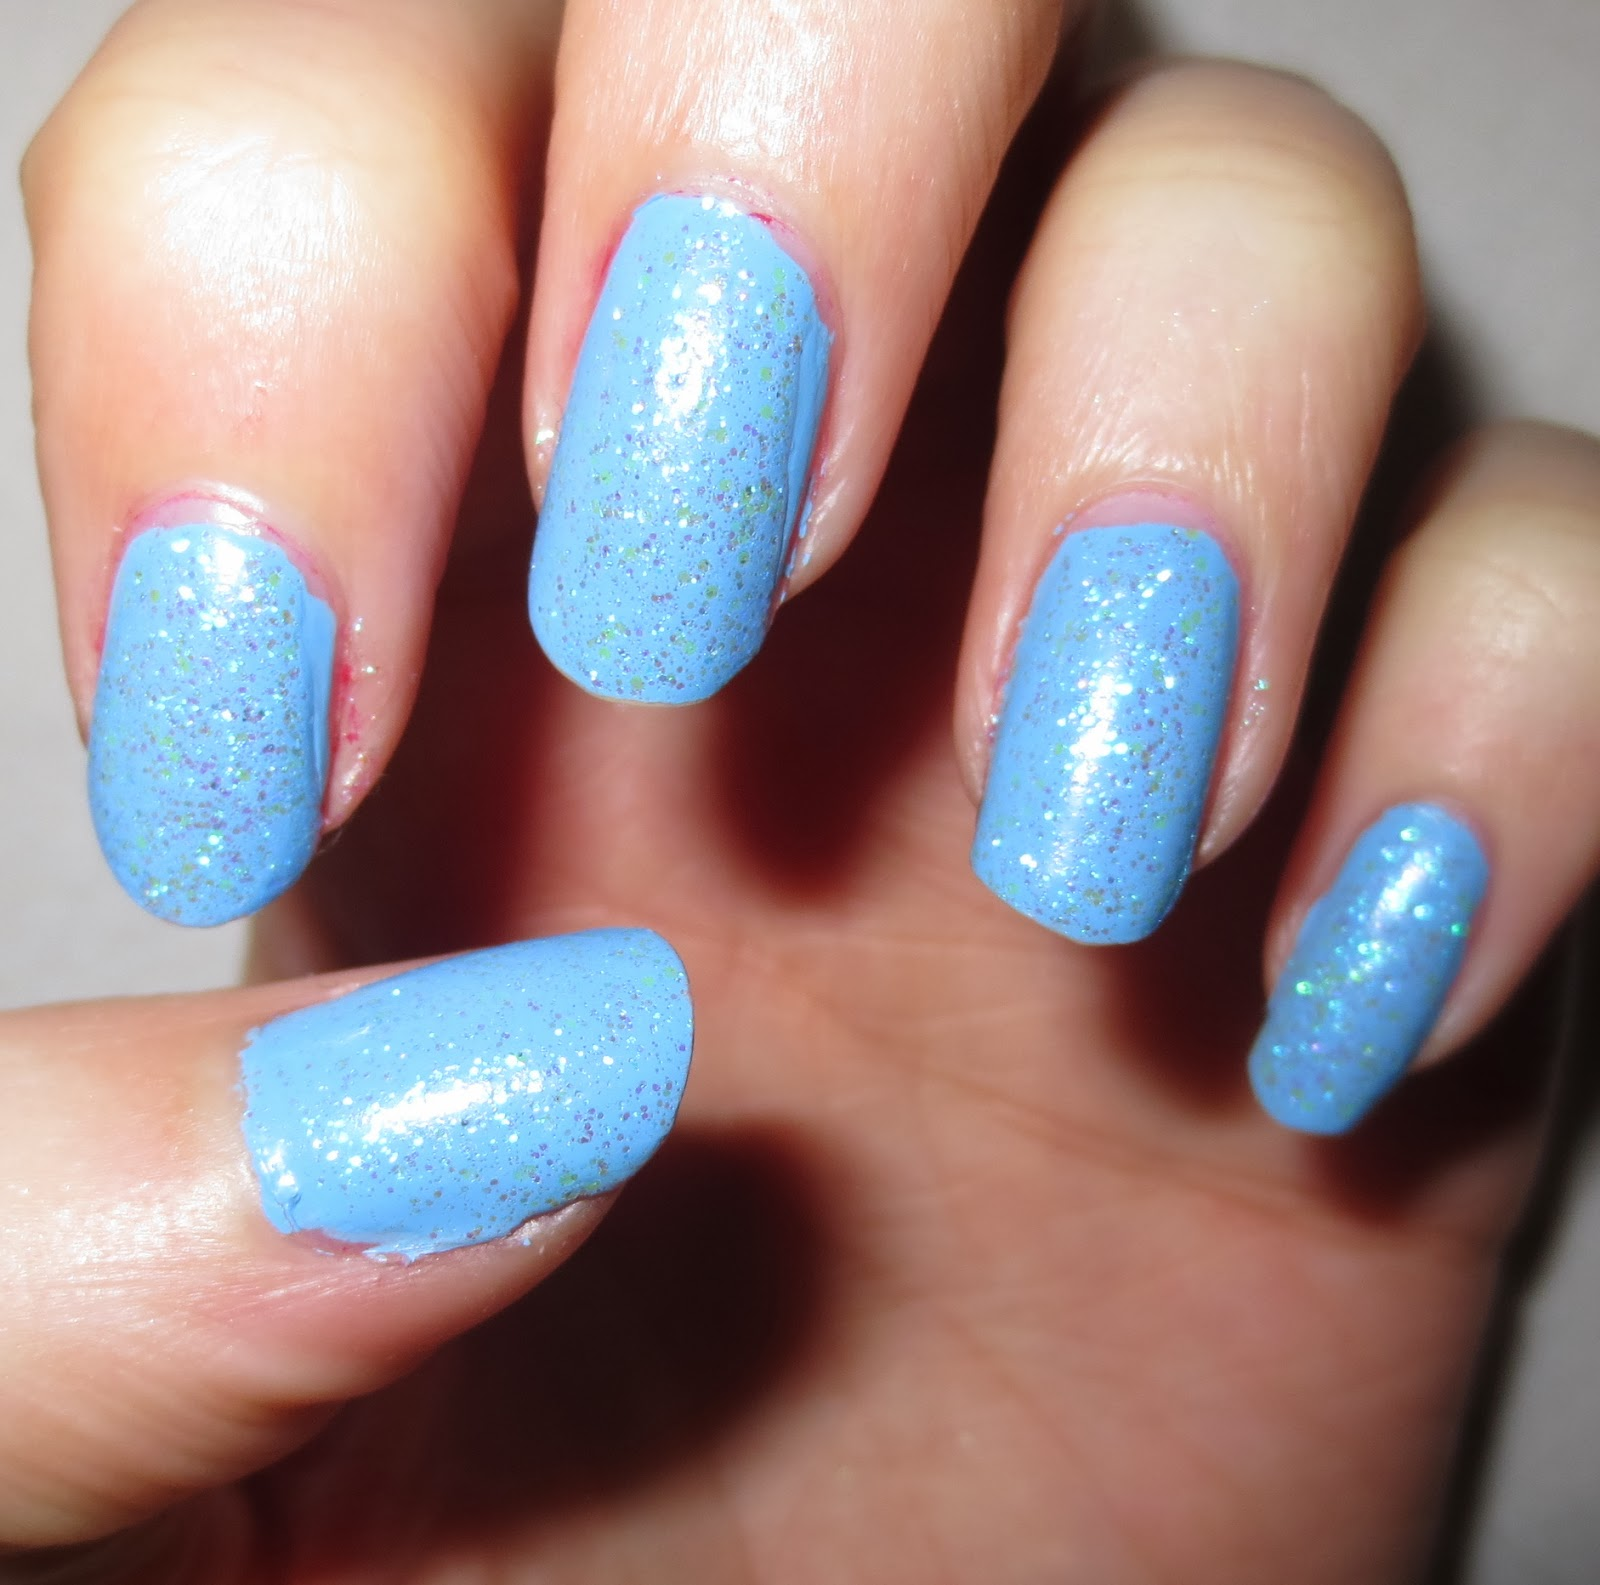 Revlon Nail Art Sun Candy in Northern Lights swatch